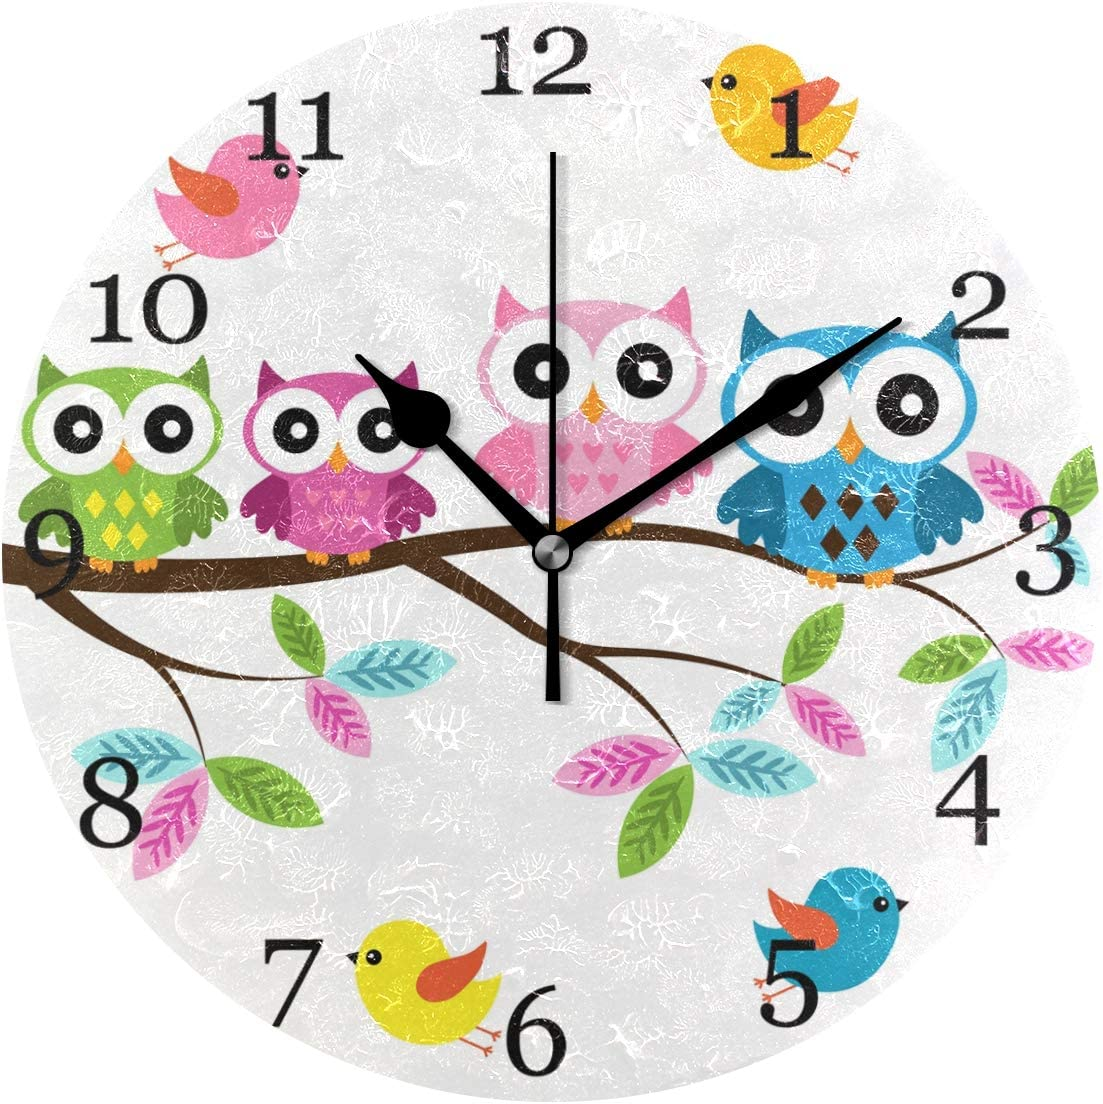 KUWT Cute Owl Wall Clock Silent Non-Ticking, Bird Tree 9.5 Inch Round Wall Clock Battery Operated Owl Clock Decor for Kids Room Home Wall Bathroom Kitchen Bedroom Living Room Office Classroom Patio